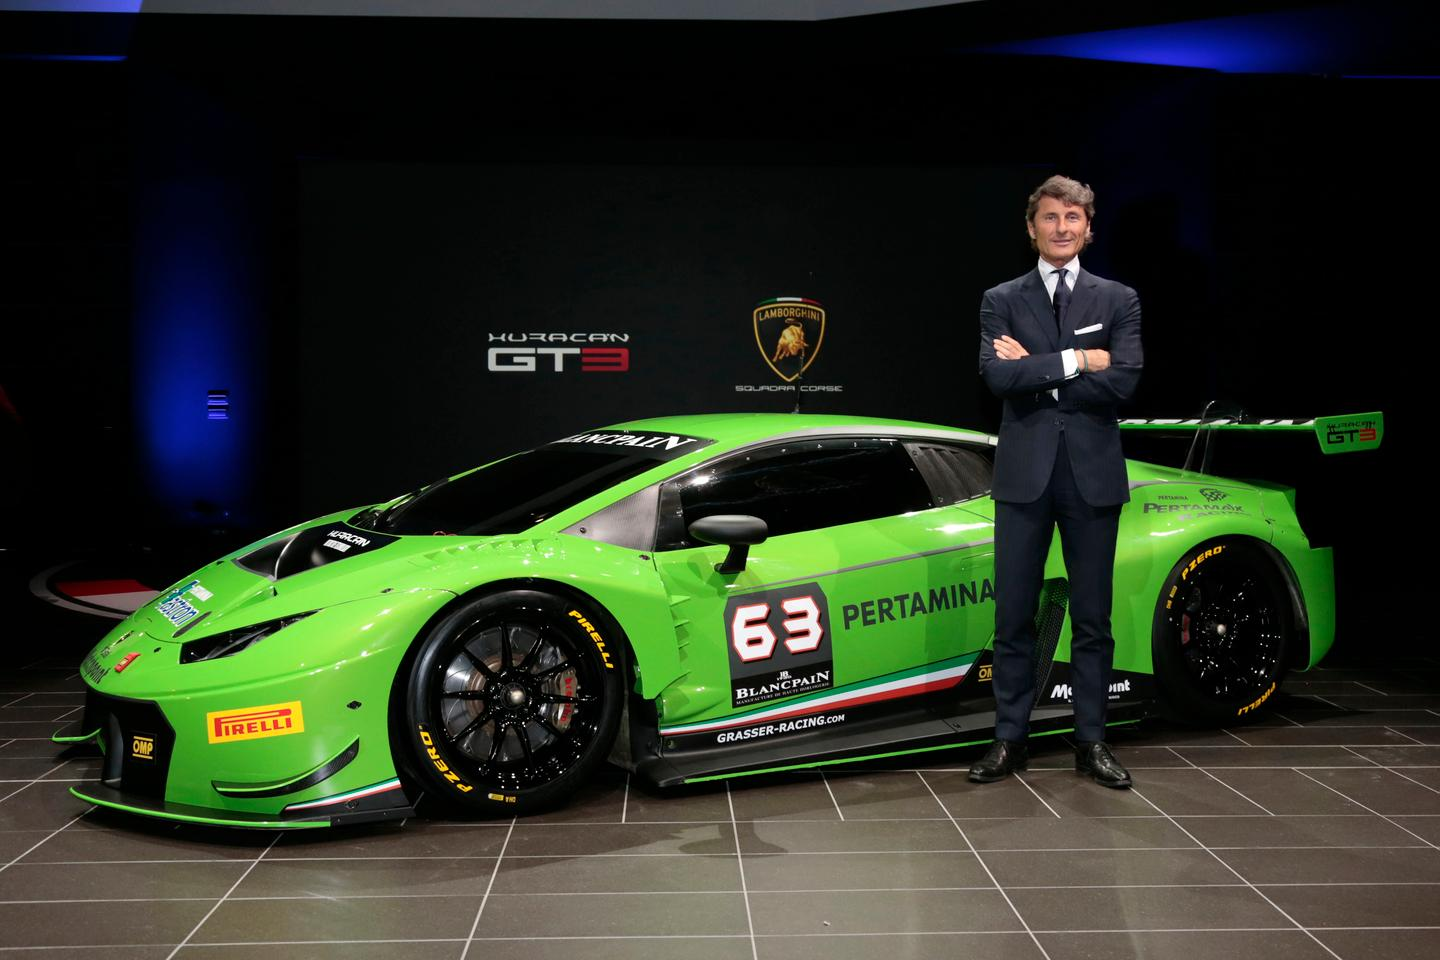 The Huracan GT3 was unveiled at Lamborghini's headquarters